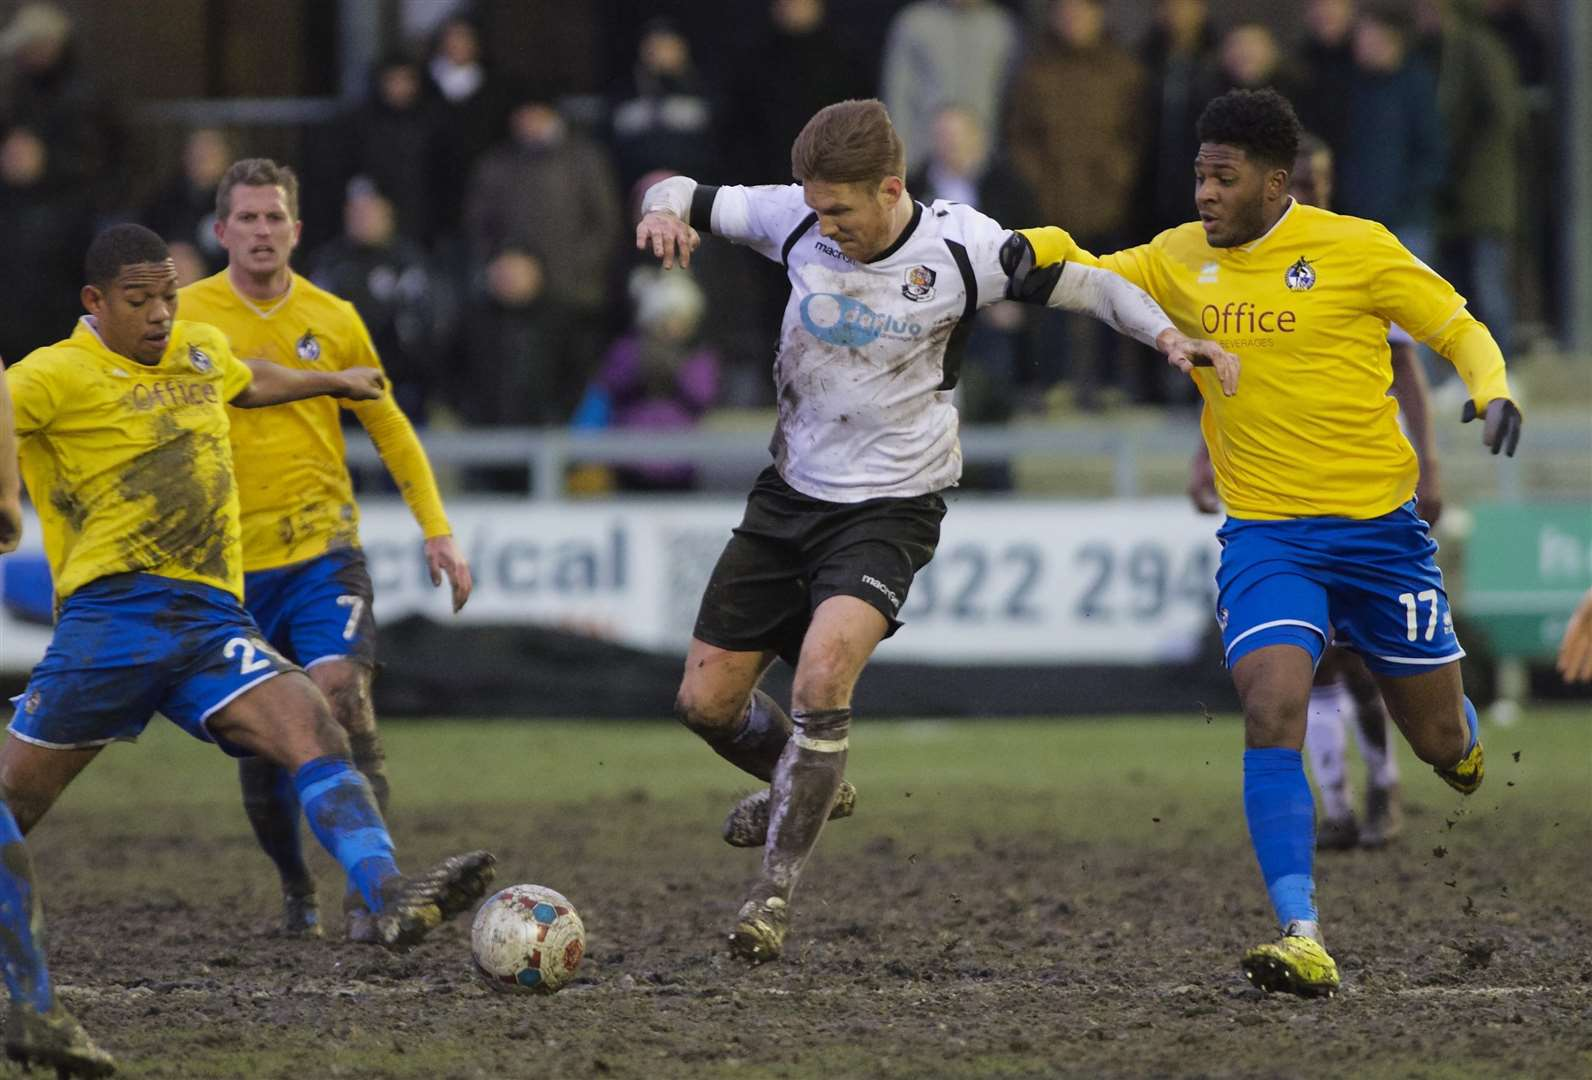 Elliot Bradbrook ploughs through the mud against Bristol Rovers Picture: Andy Payton